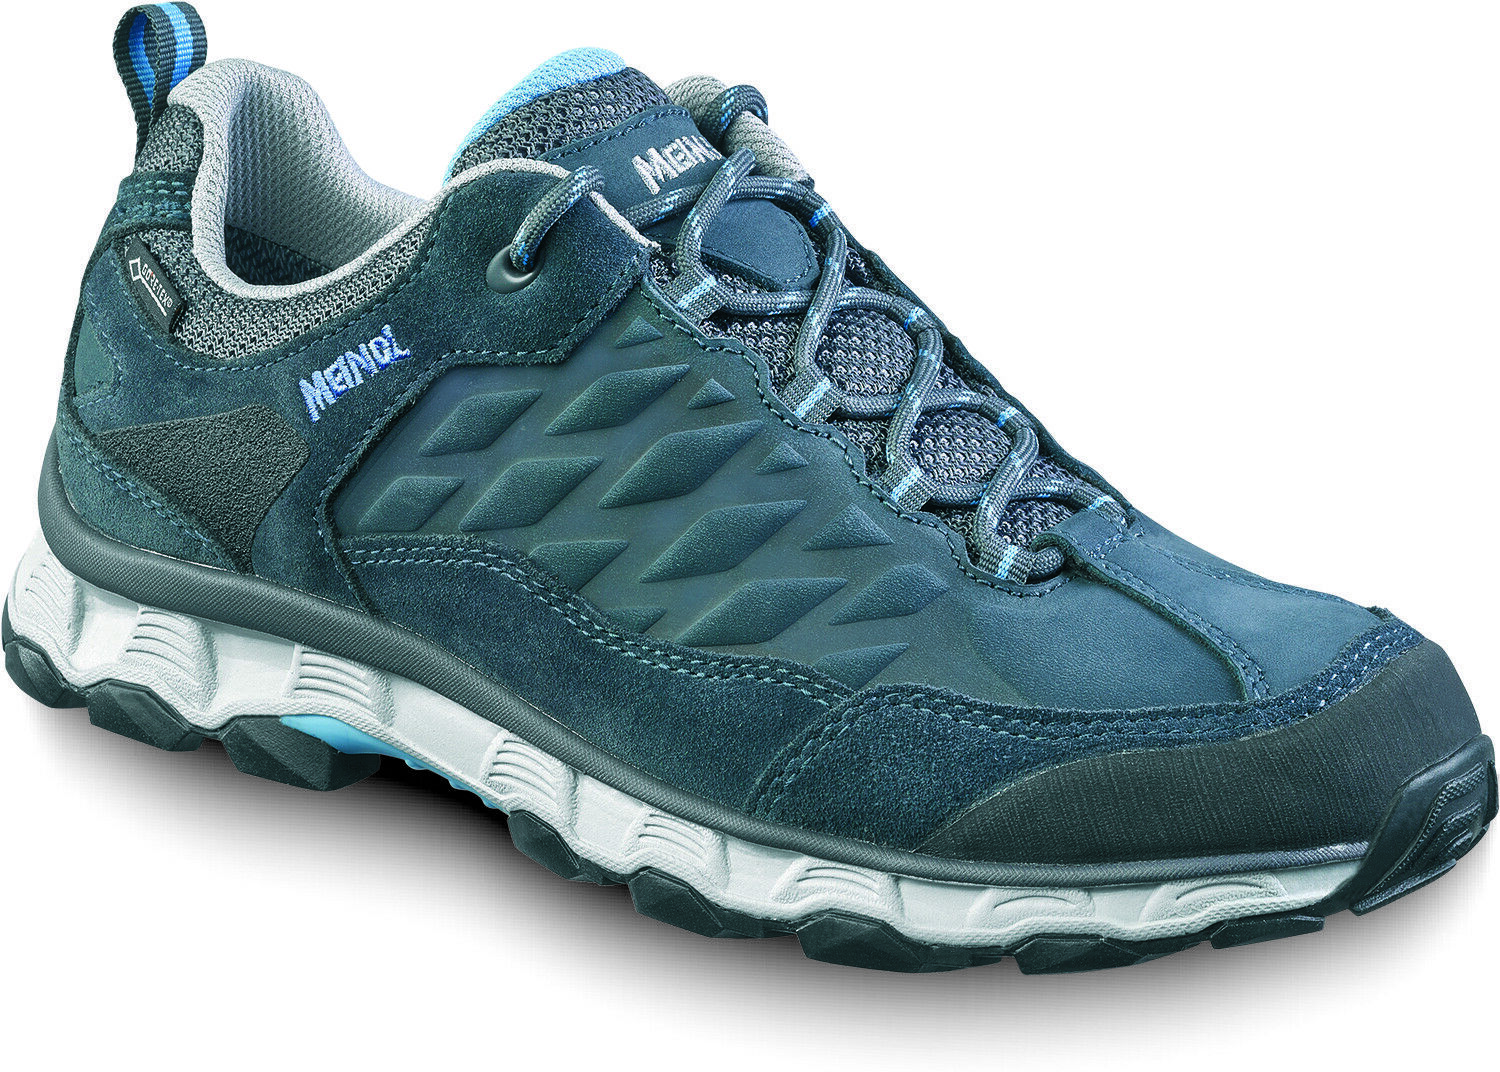 Meindl Lima Lady GTX Women's shoes Hiking shoes Outdoorschuh Casual shoes